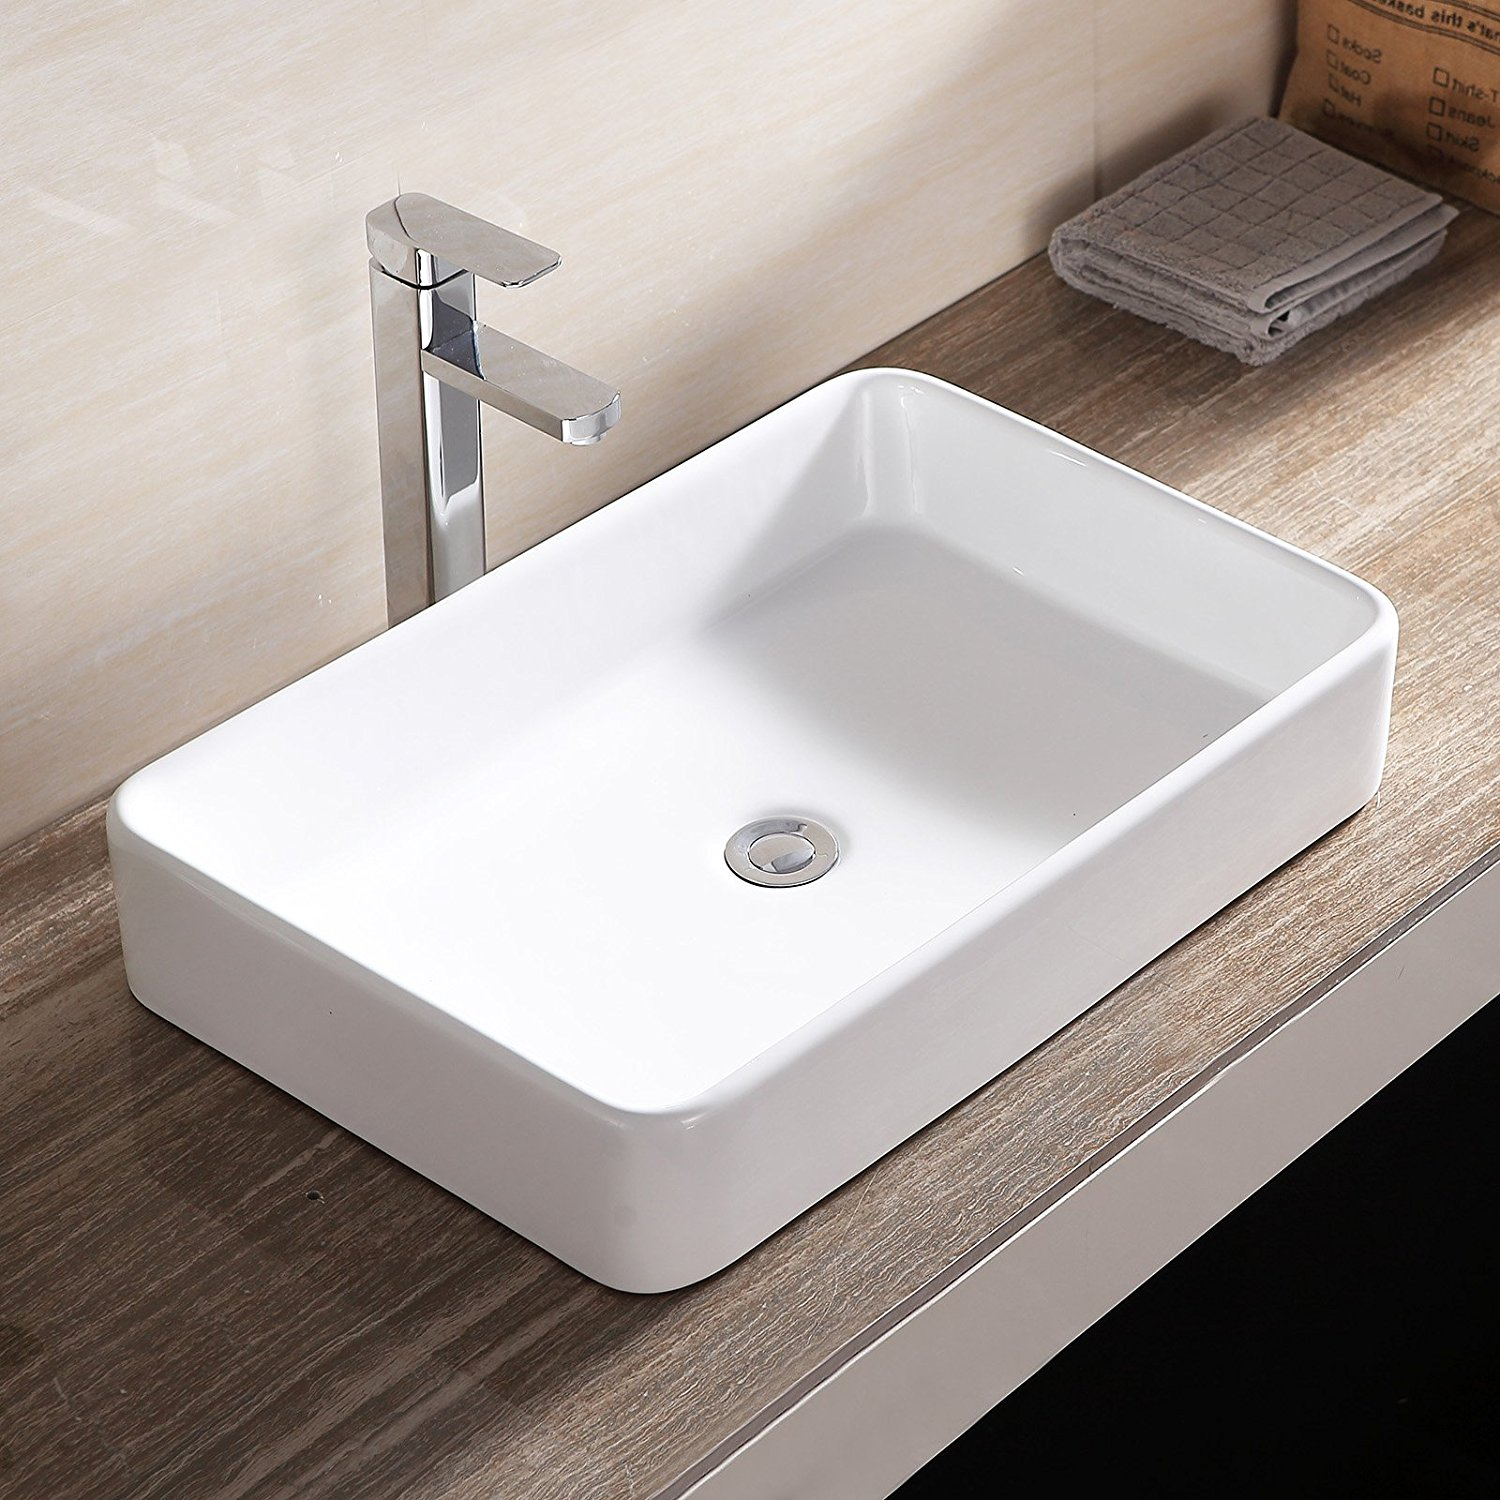 Topbath Bathroom Rectangle Sink Bowl Vessel Basin w/Pop Up Drain White Porcel